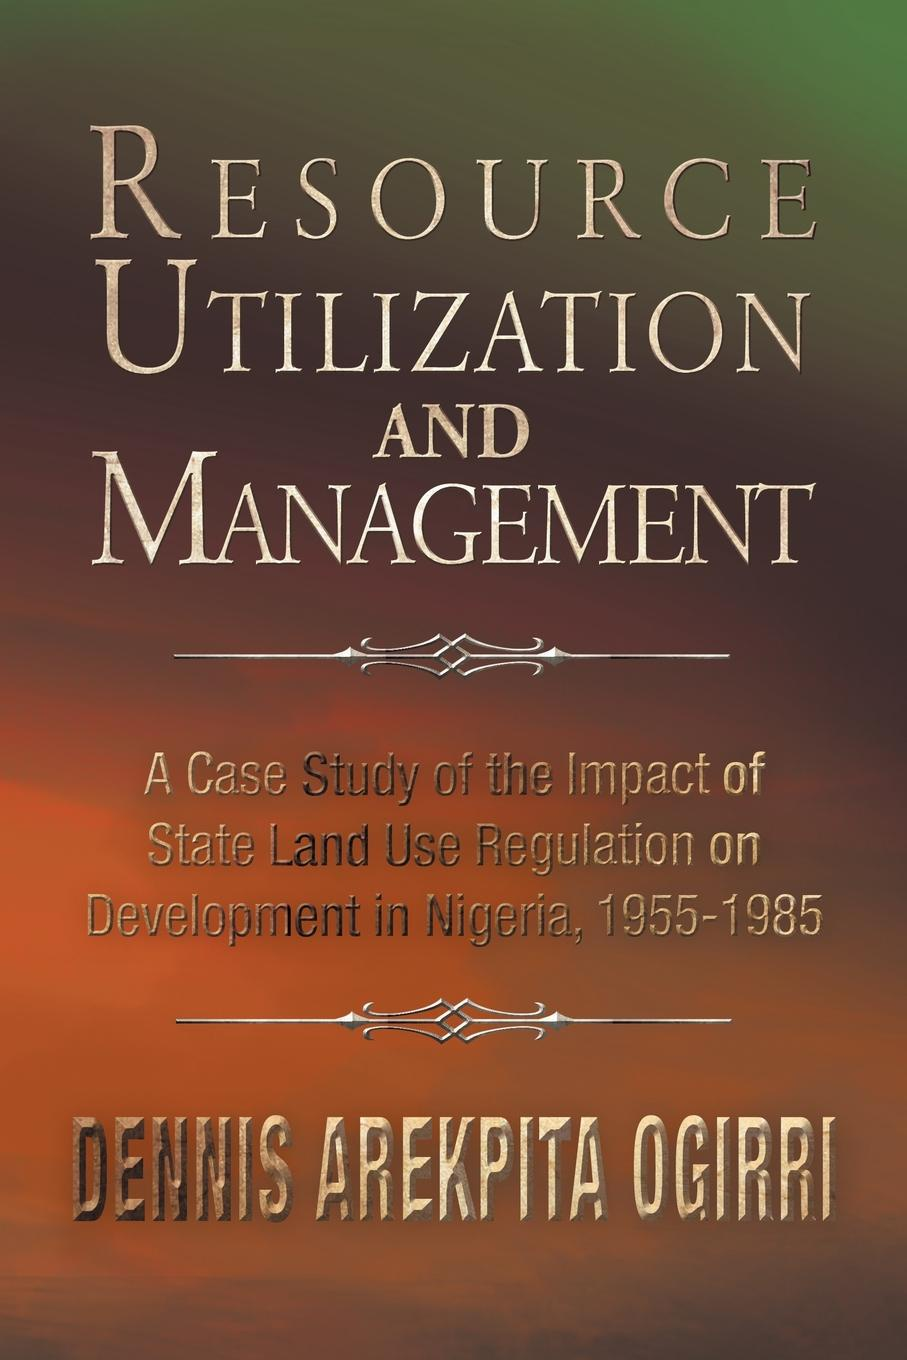 Dennis Arekpita Ogirri Ph.D. Resource Utilization and Management. A Case Study Of The Impact Of State Land Use Regulation on Development in Nigeria, 1955-1985 sarah musau a distant dream exploring the impact of women rights on tanzania s development